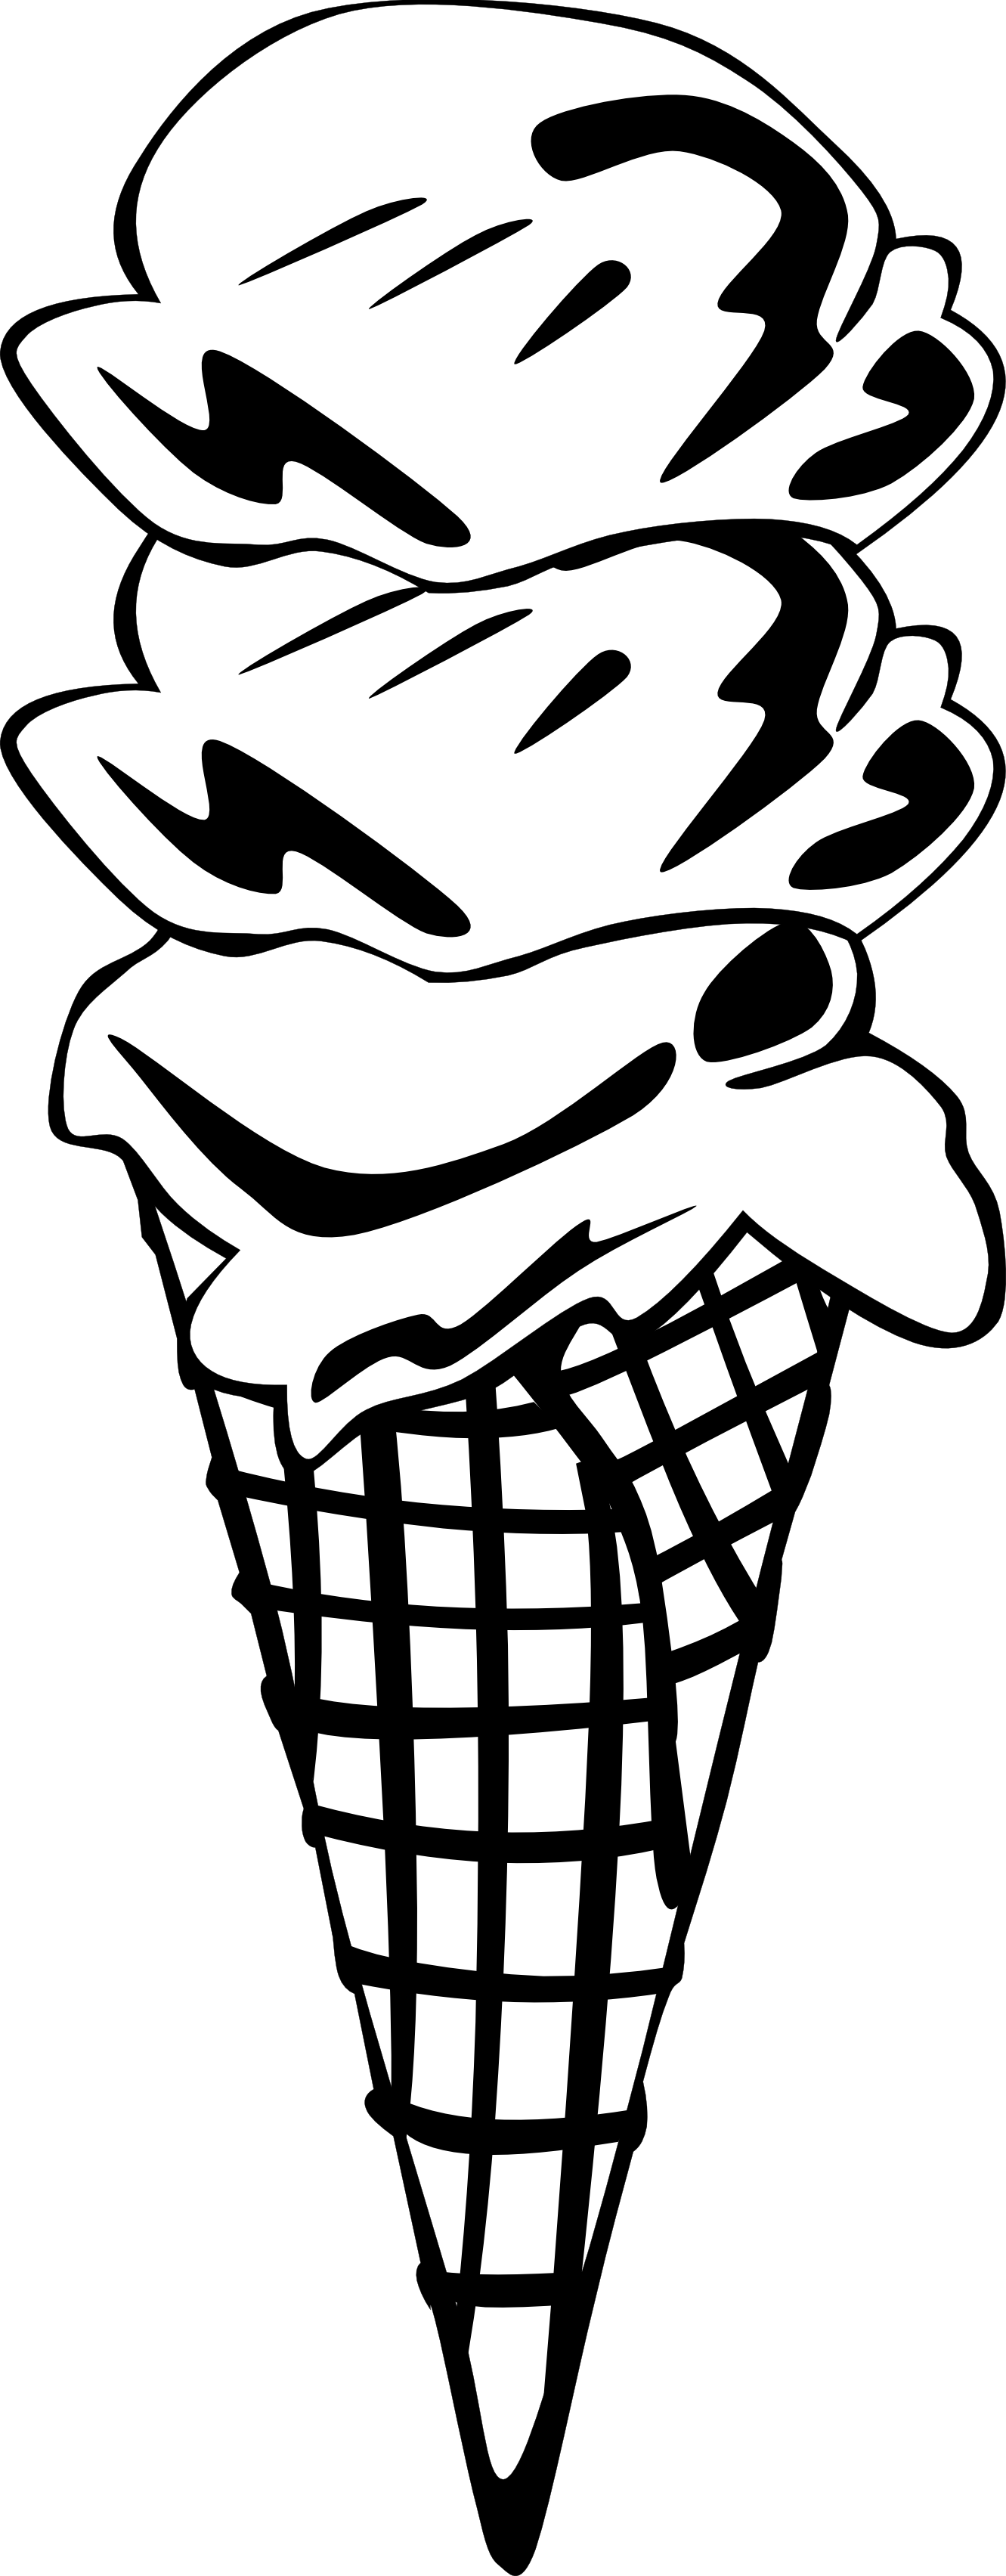 ice%20cream%20sundae%20clipart%20black%20and%20white